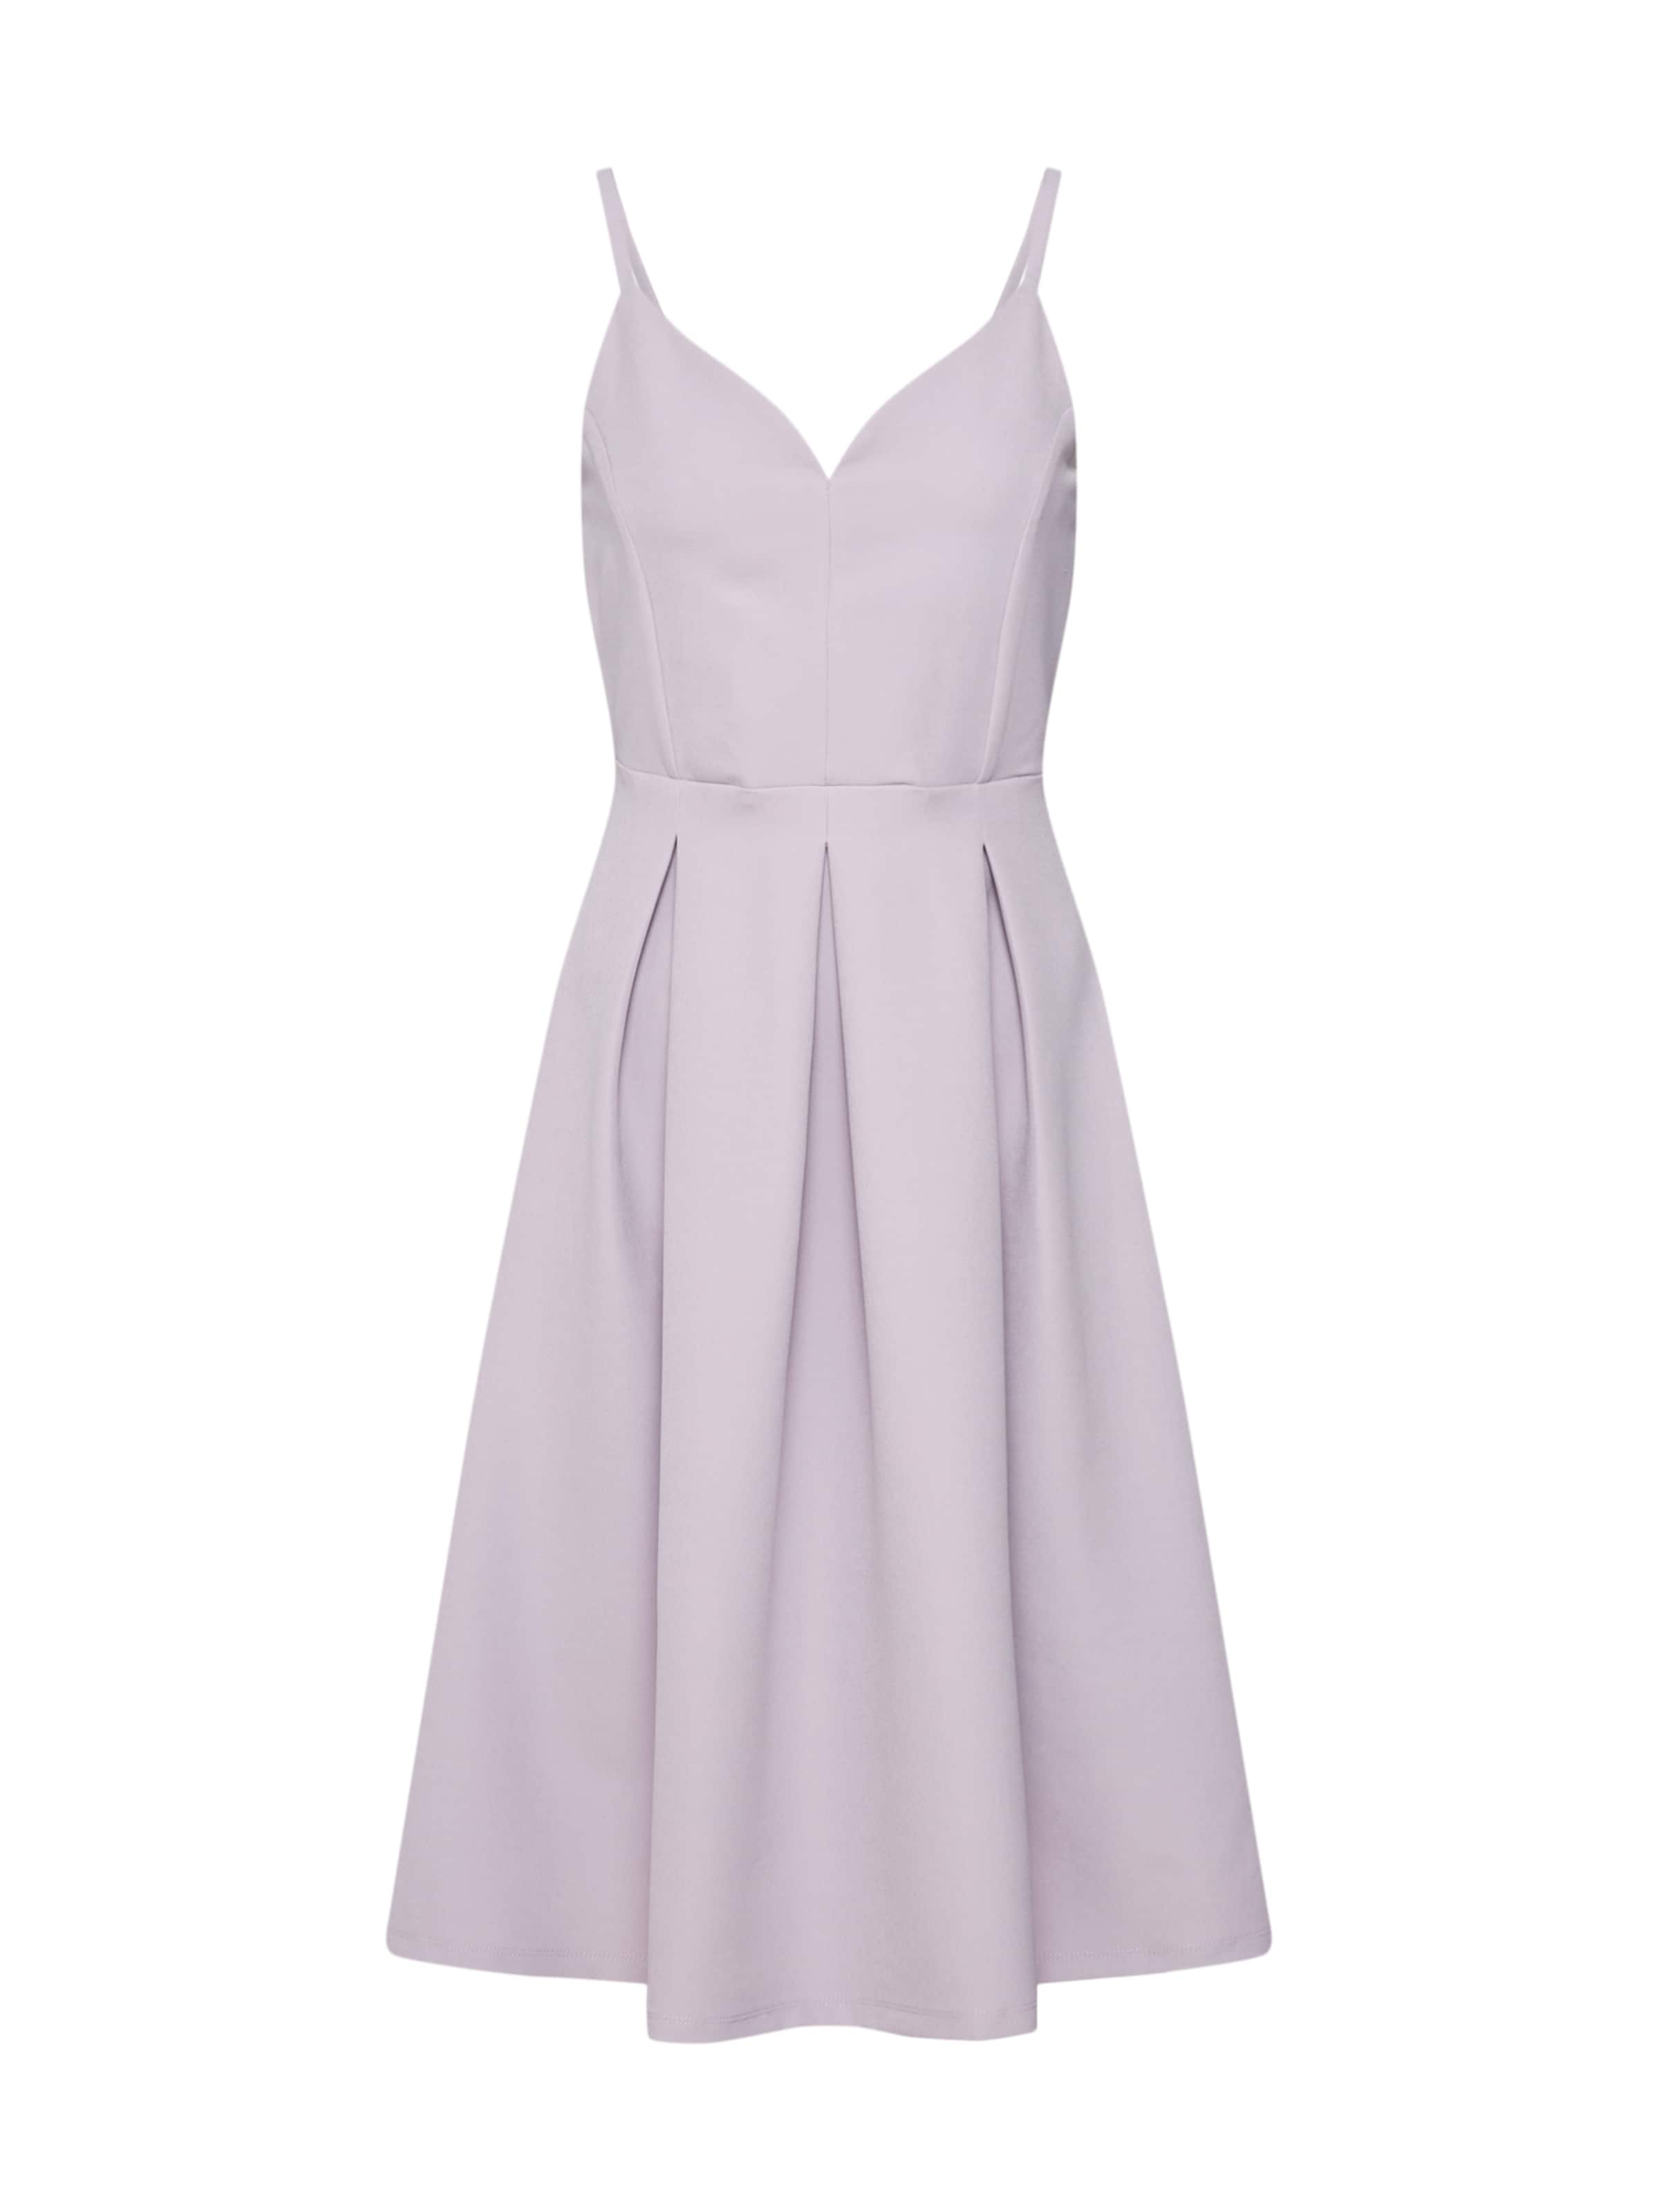 Lavande 'heather' De En Robe Cocktail About You hdsQCtr